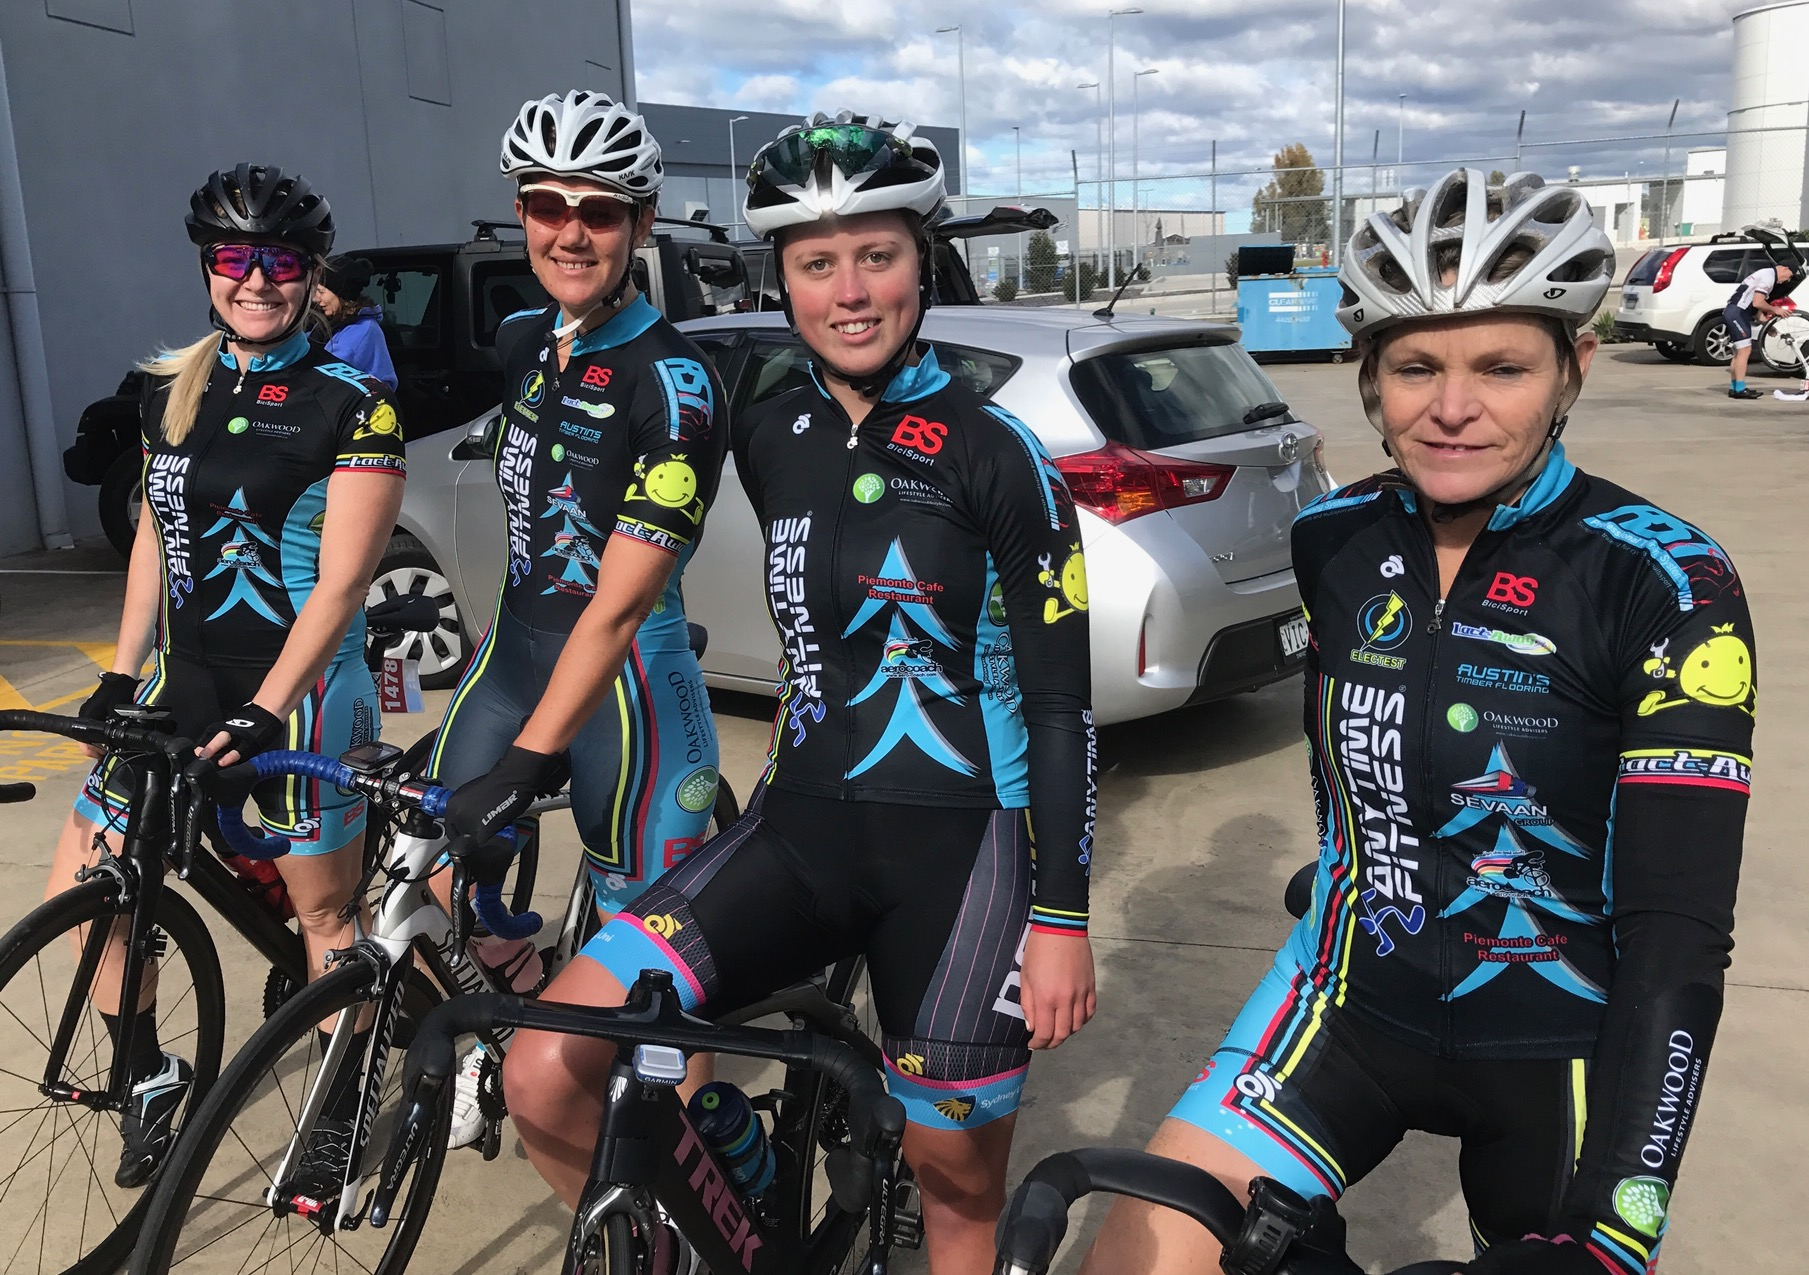 Nowra 17 - Sassafras Challenge Womens Team of Amber Walsh, Ruth Strapp, Angela Smith & Su Preeto finished an excellent third